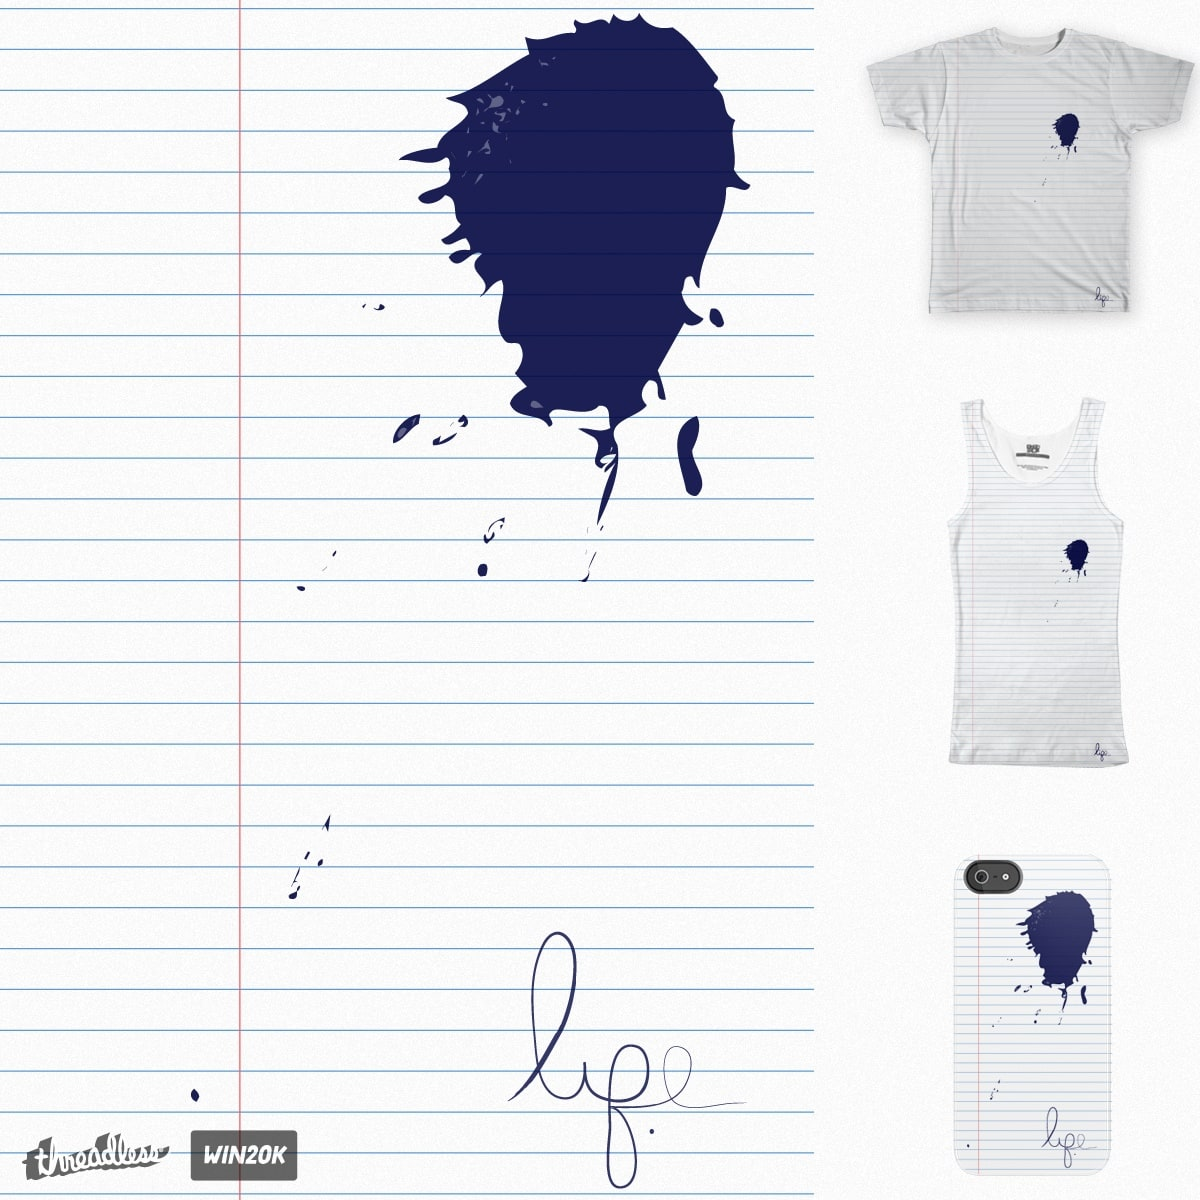 Lined Paper Stain by anlynners on Threadless